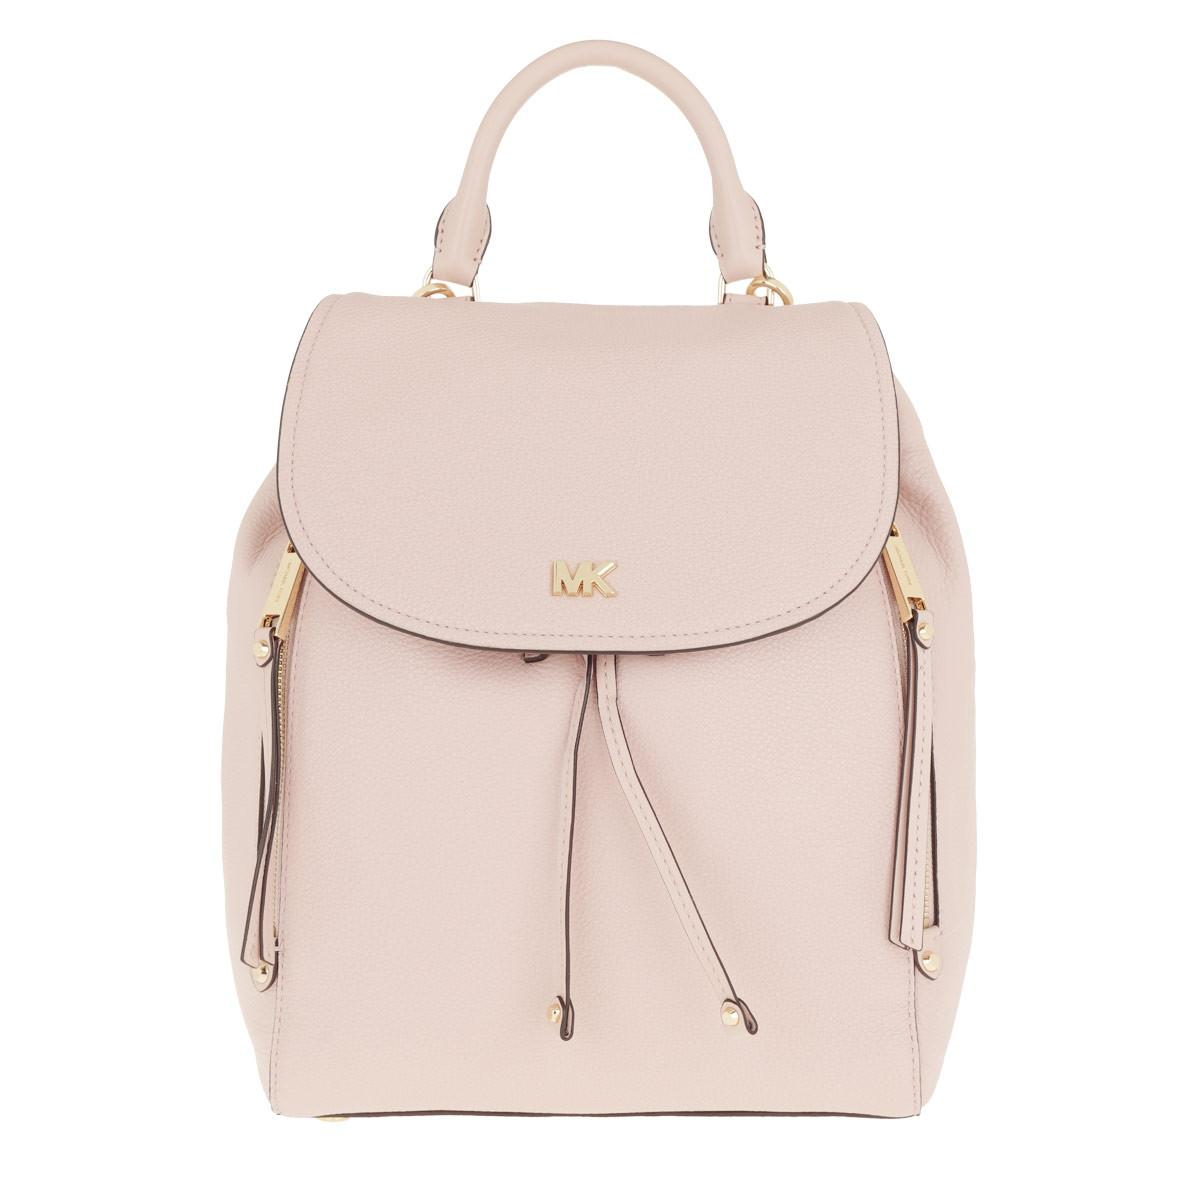 a345ed8a5f51 Michael Kors Evie Medium Backpack Soft Pink in Pink - Lyst